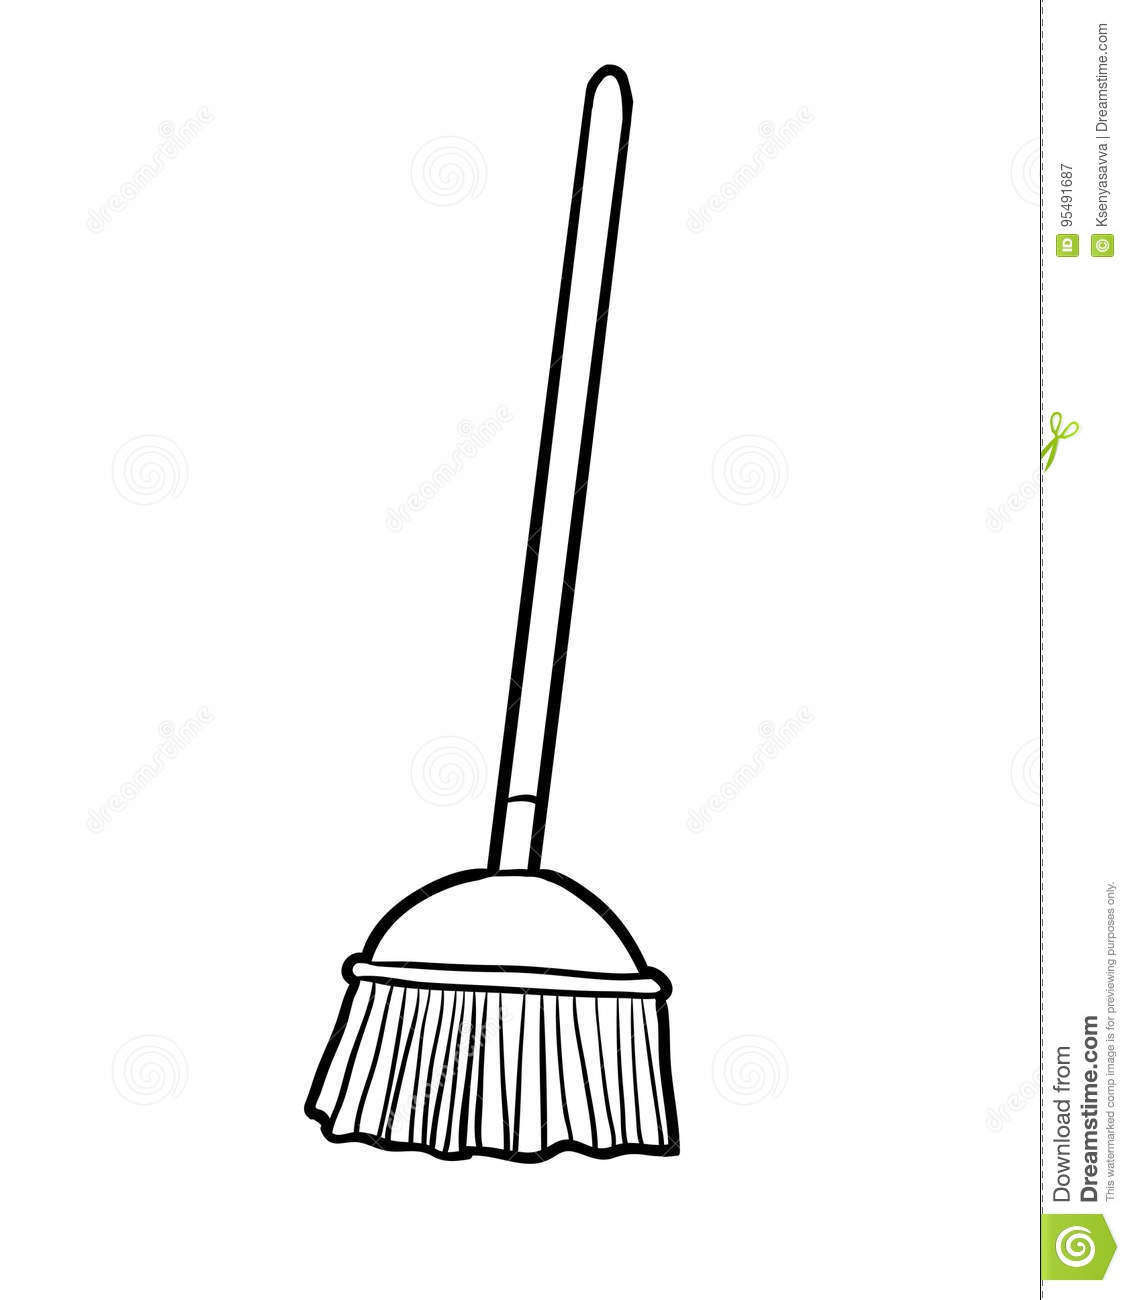 Coloring Book Broom Stock Vector Illustration Of